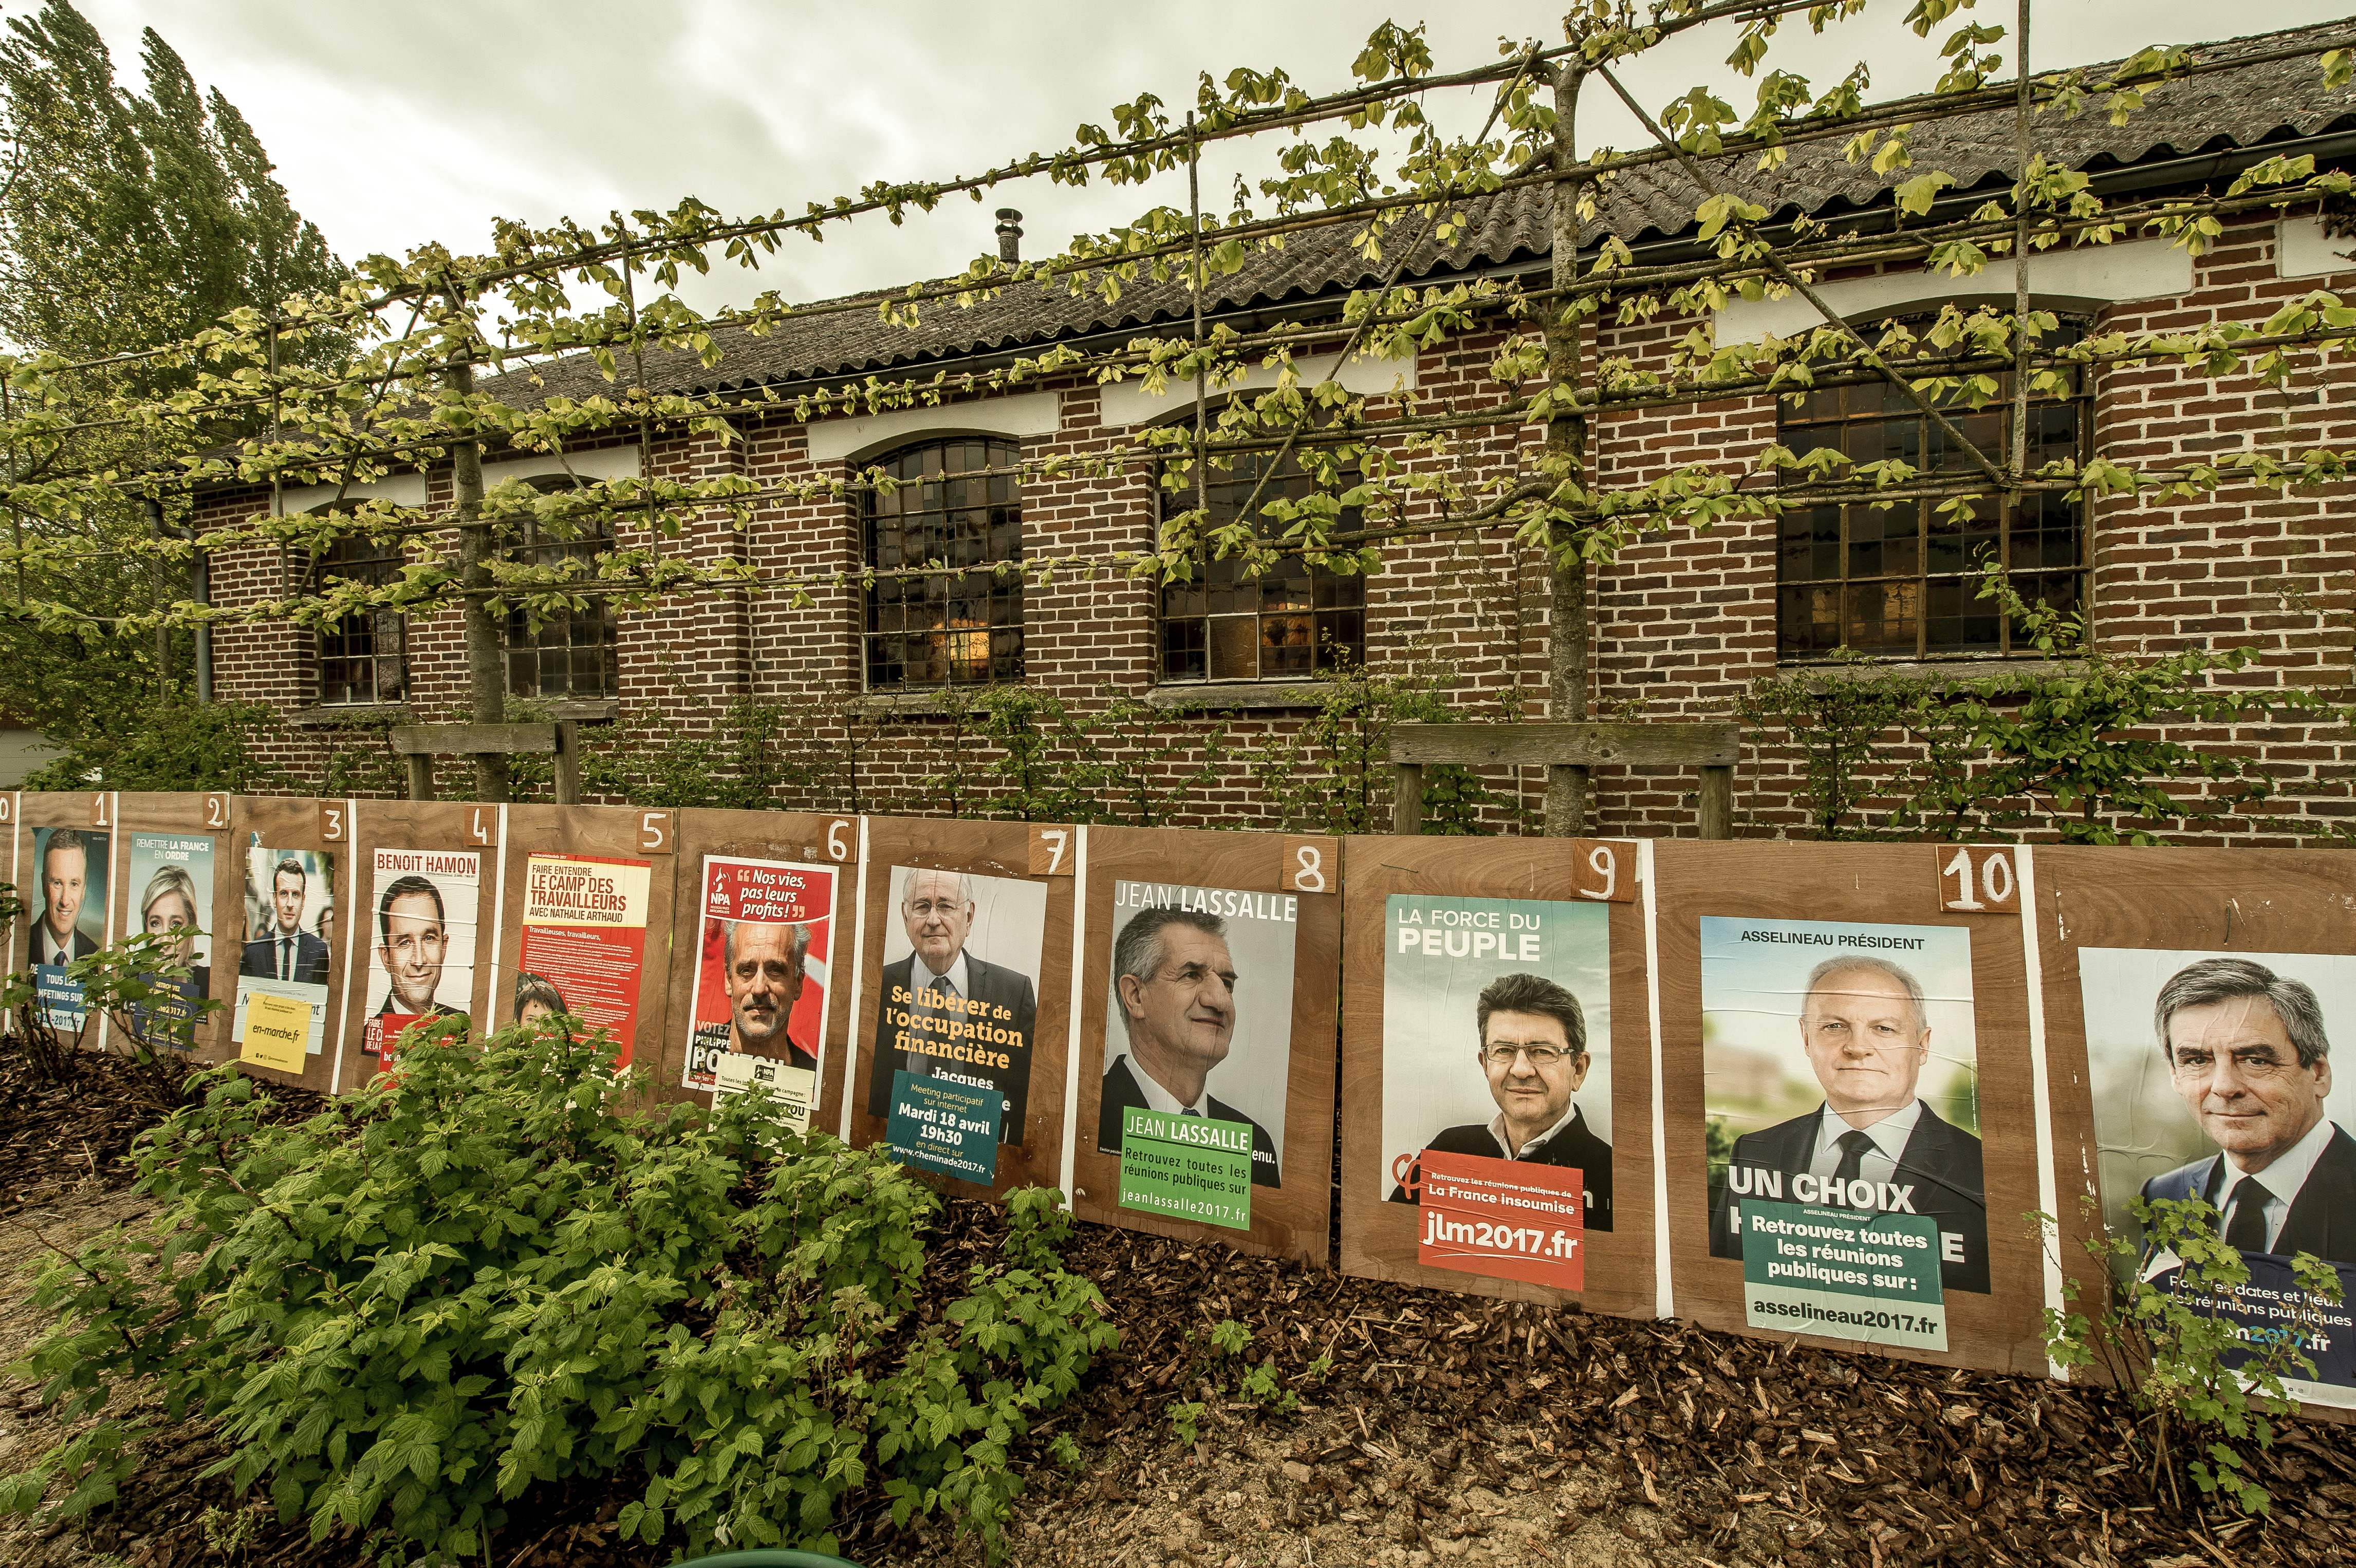 France elections 2017 live - 2017 Campaign Posters Of French Presidential Election Candidates